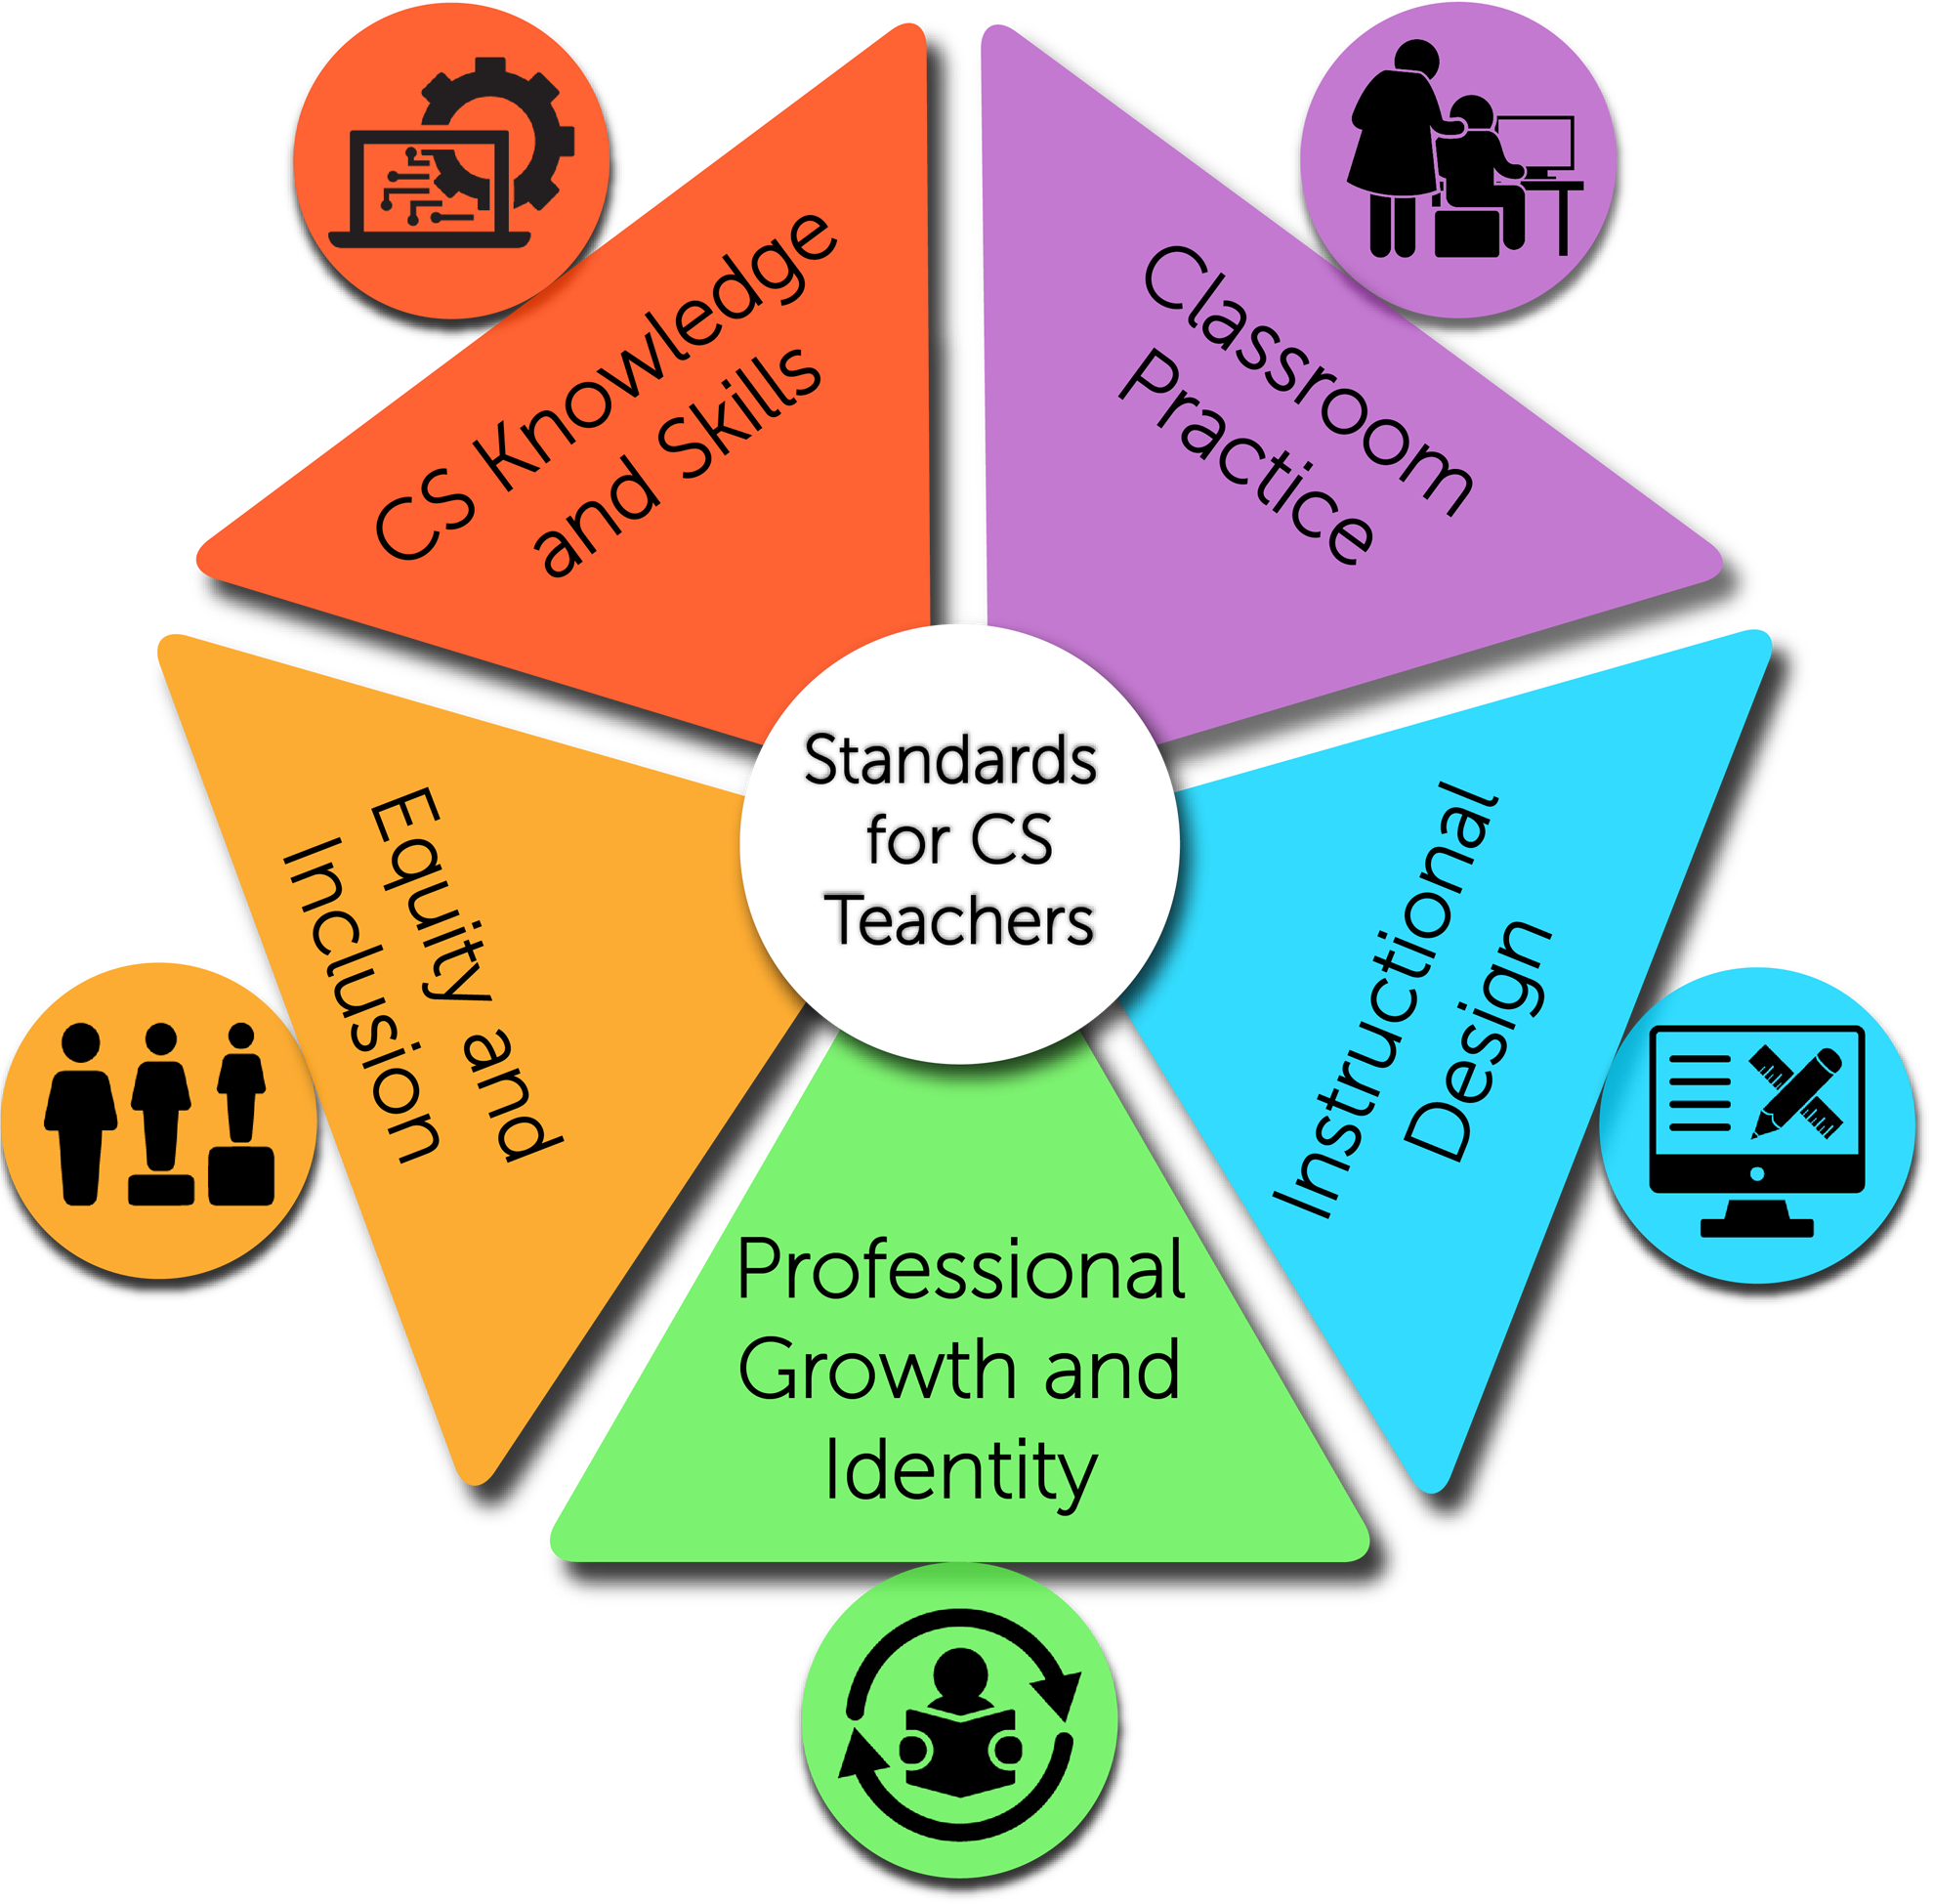 Graphic showing five standards for CS teachers